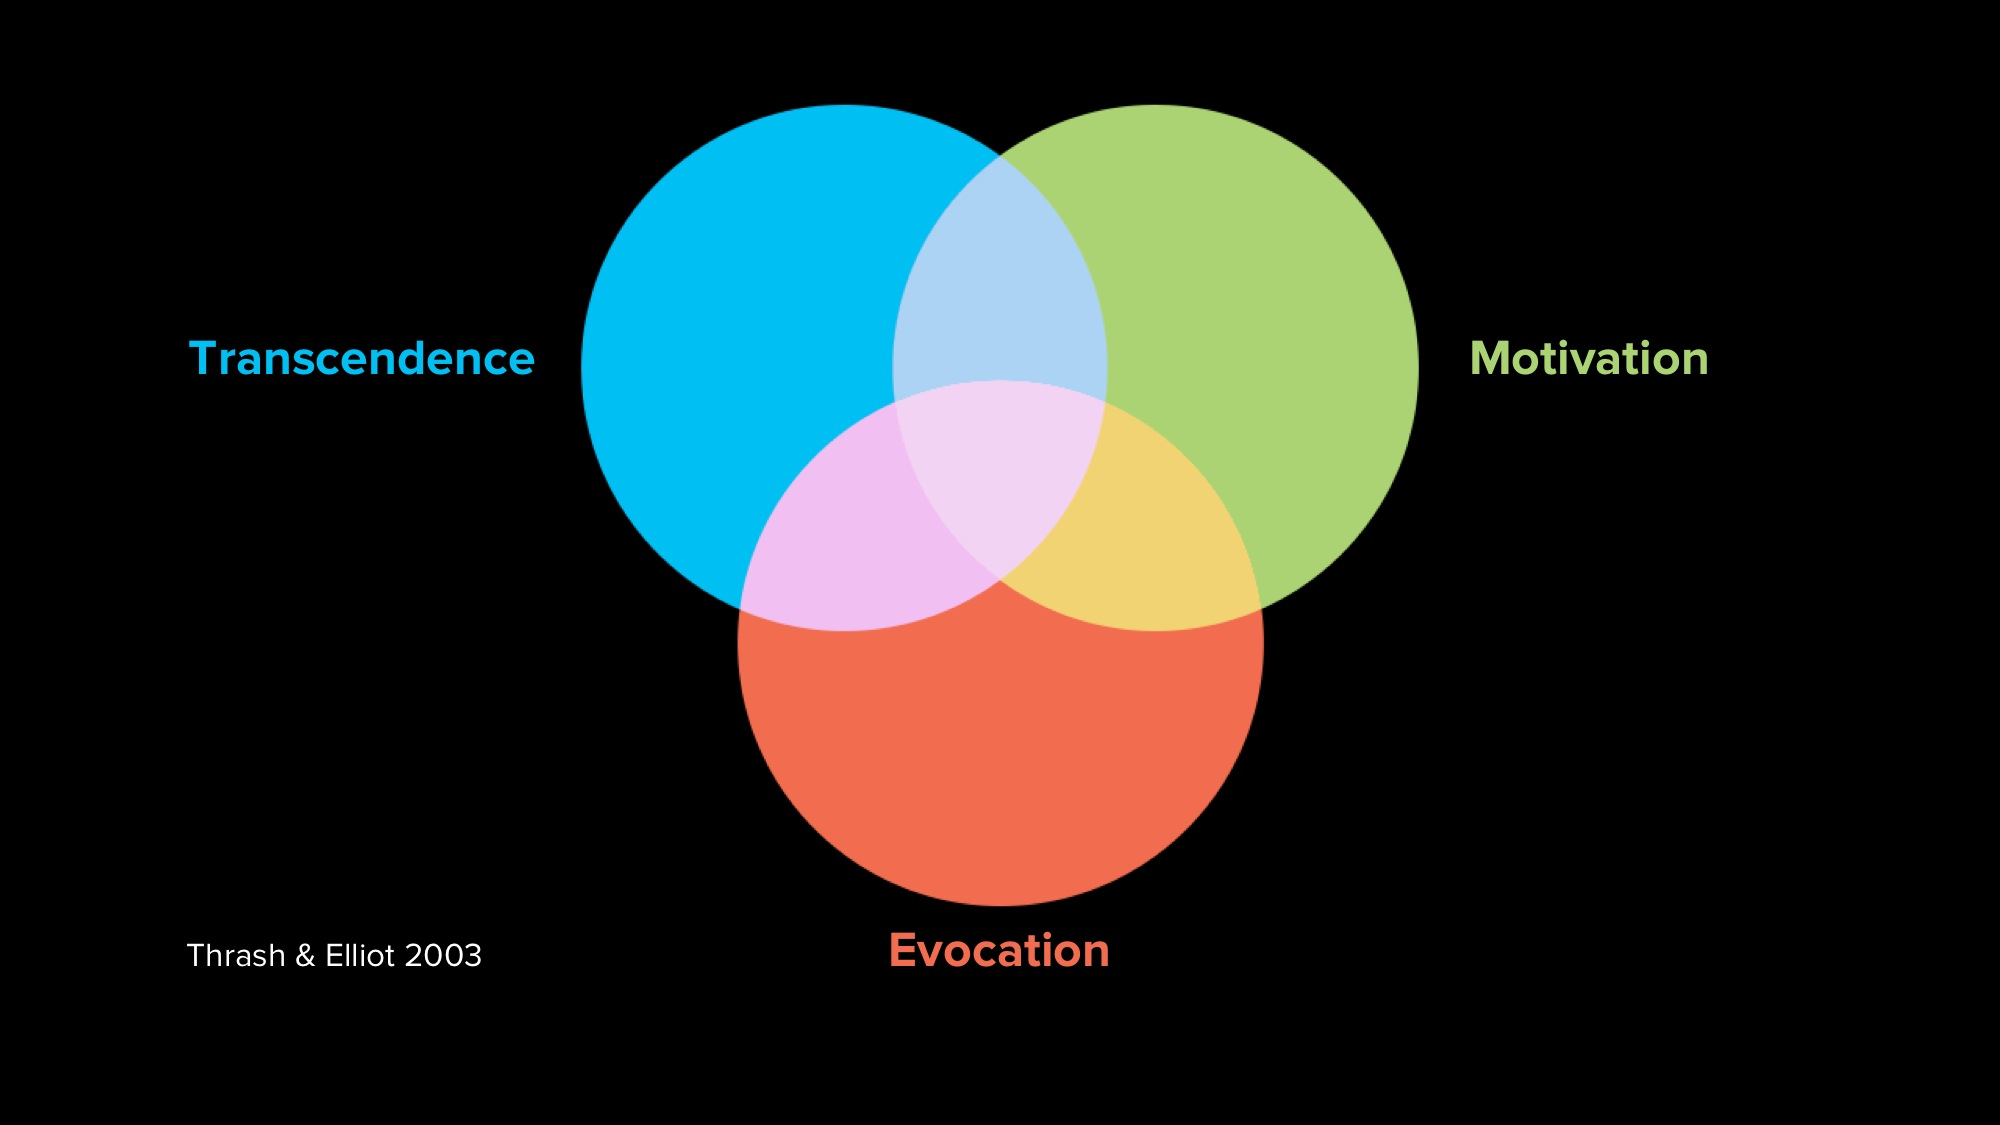 2014.10.17 - -How Are Ideas Connected- Drawing the Design Process of Idea Networks in Global Game Jam- - Meaningful Play 2014 3.jpeg